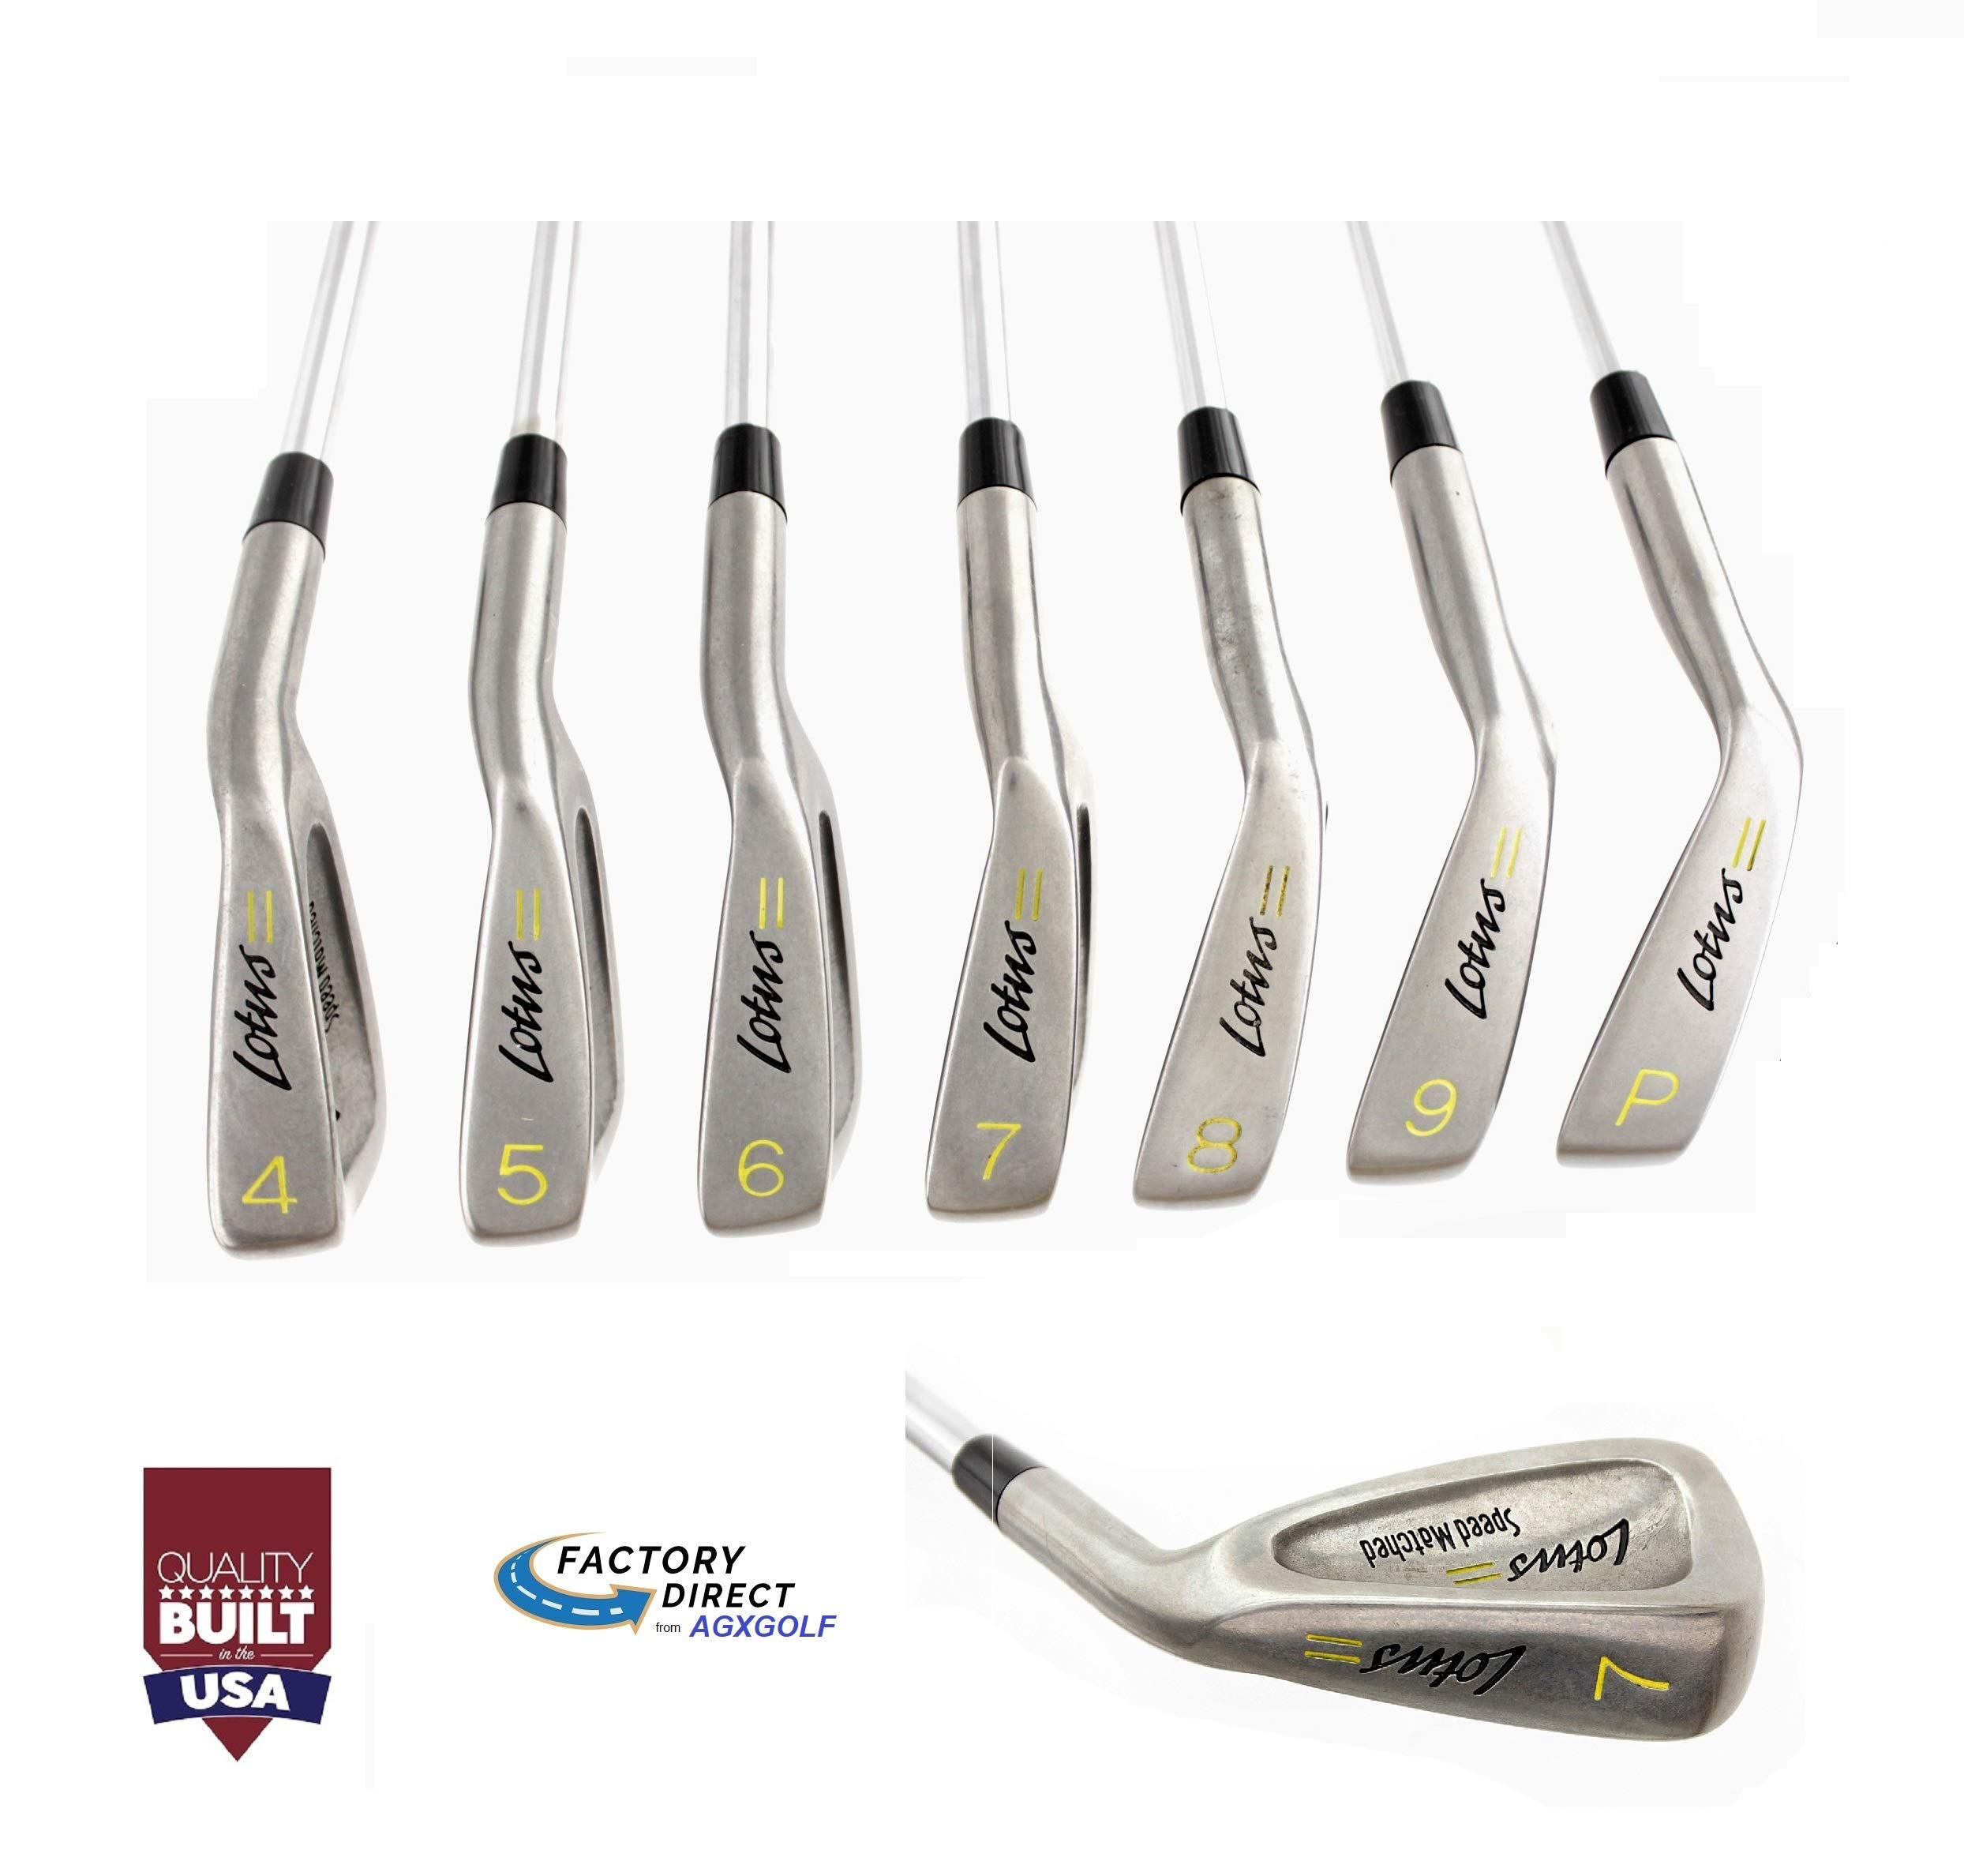 TaylorFit Ladies Right Hand Regular Length Lotus Series Irons Set w/Lady Flex Stainless Steel Shafts: 4, 5, 6, 7, 8 & 9 Irons + Pitching Wedge Built in The USA! by AGXGOLF